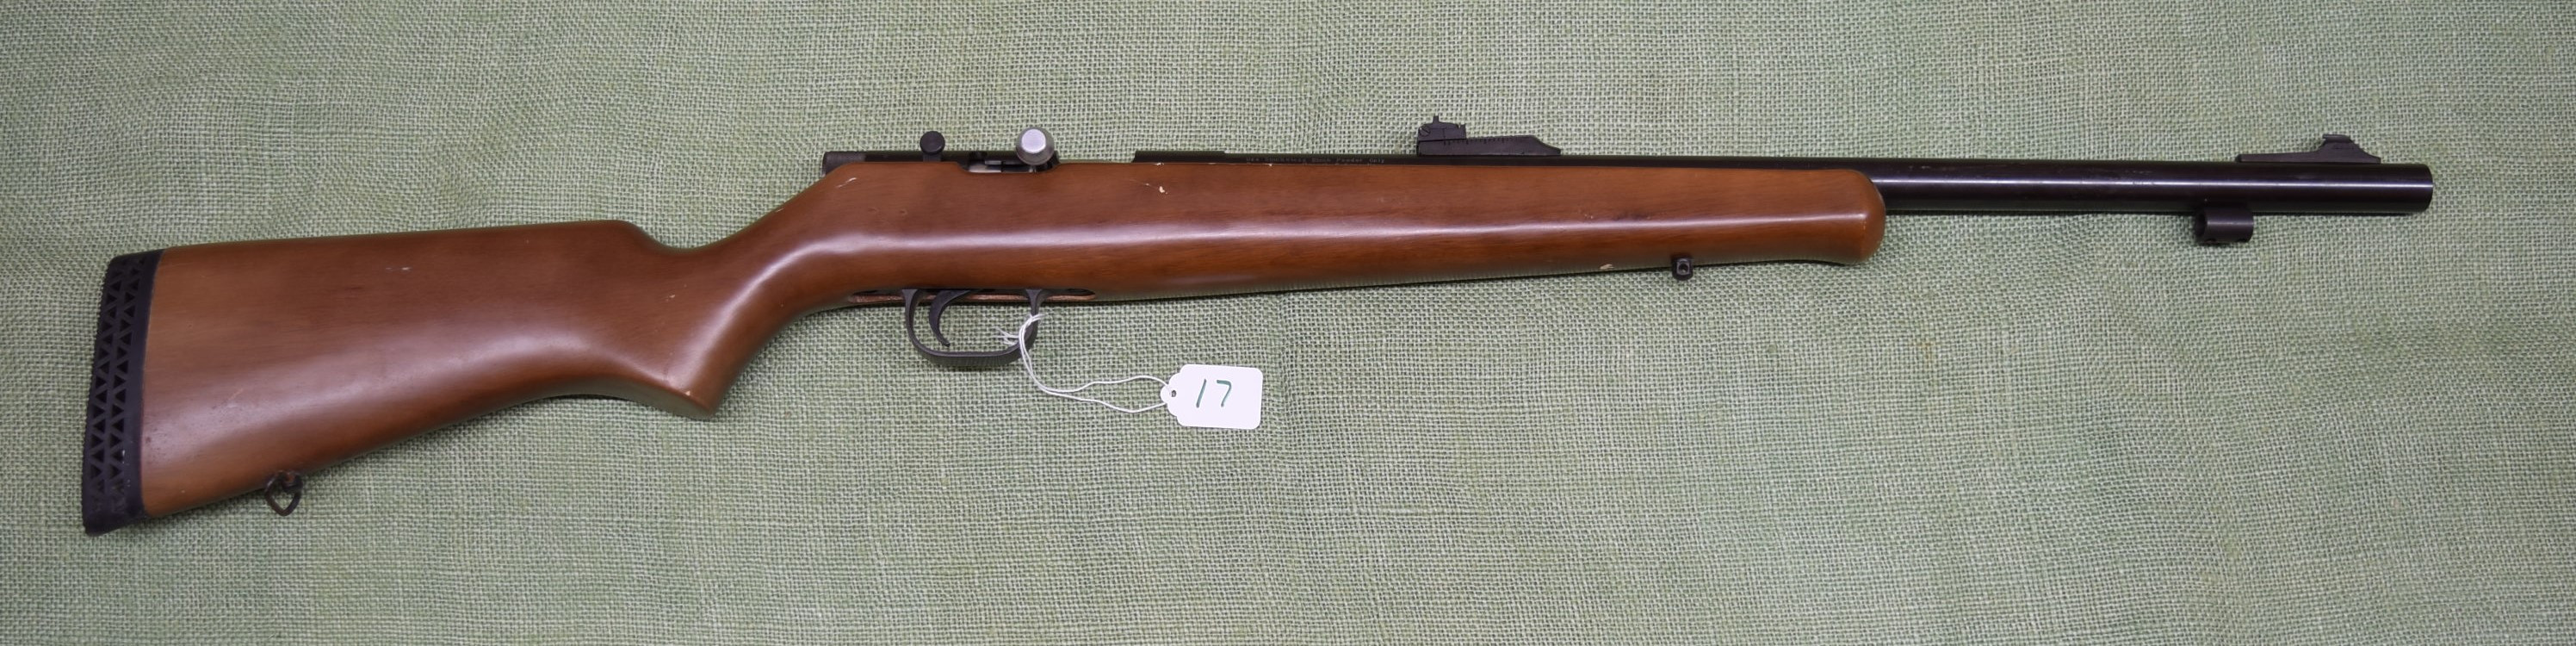 gew hardwood floor inc of horst auction upcoming auction with regard to serial 03 00885 50 caliber black powder inline percussion muzzleloading rifle made in china 22a½ barrel with a good bore rifle uses a percussion cap